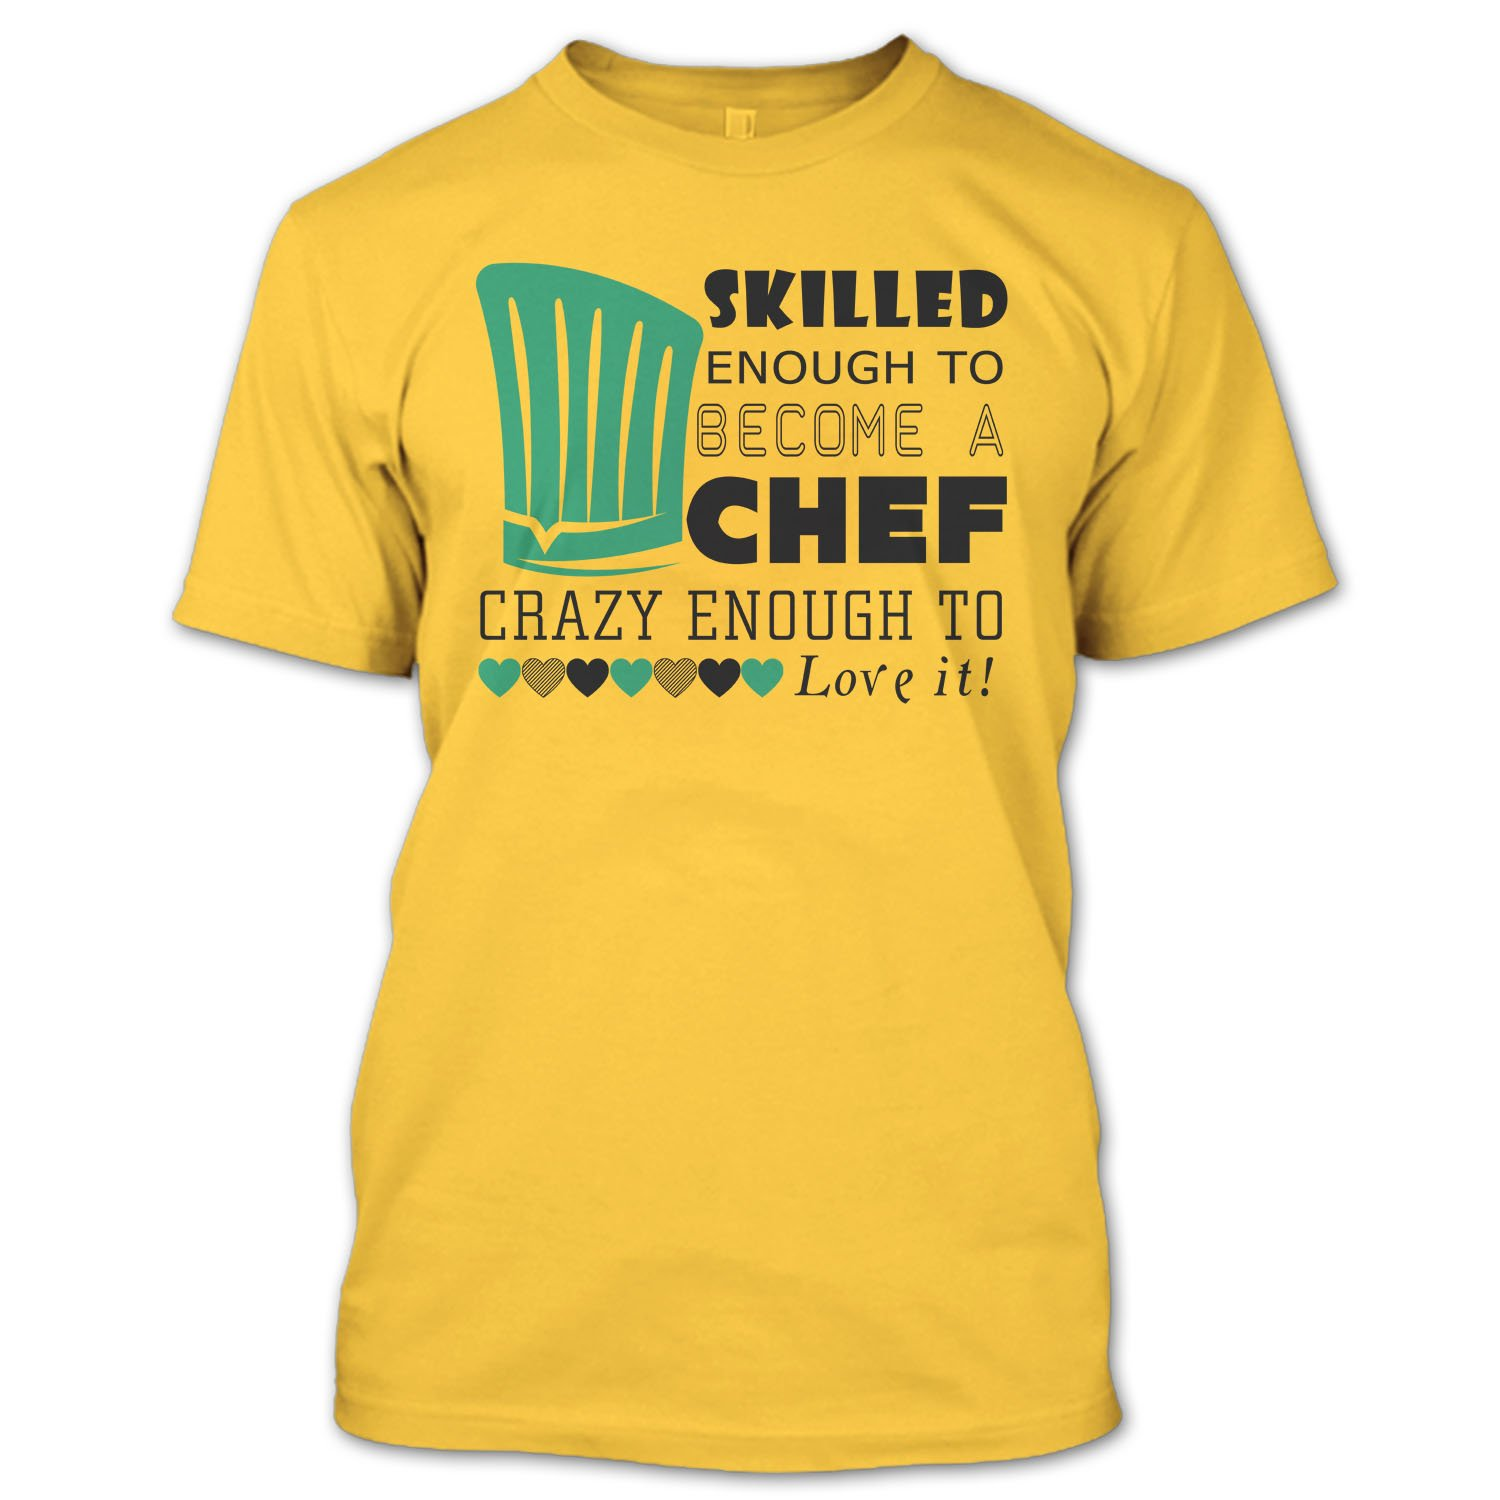 Skilled Enough To Become A Chef T Shirt, I'm A Coolest Chef T Shirt I' m A Coolest Chef T Shirt